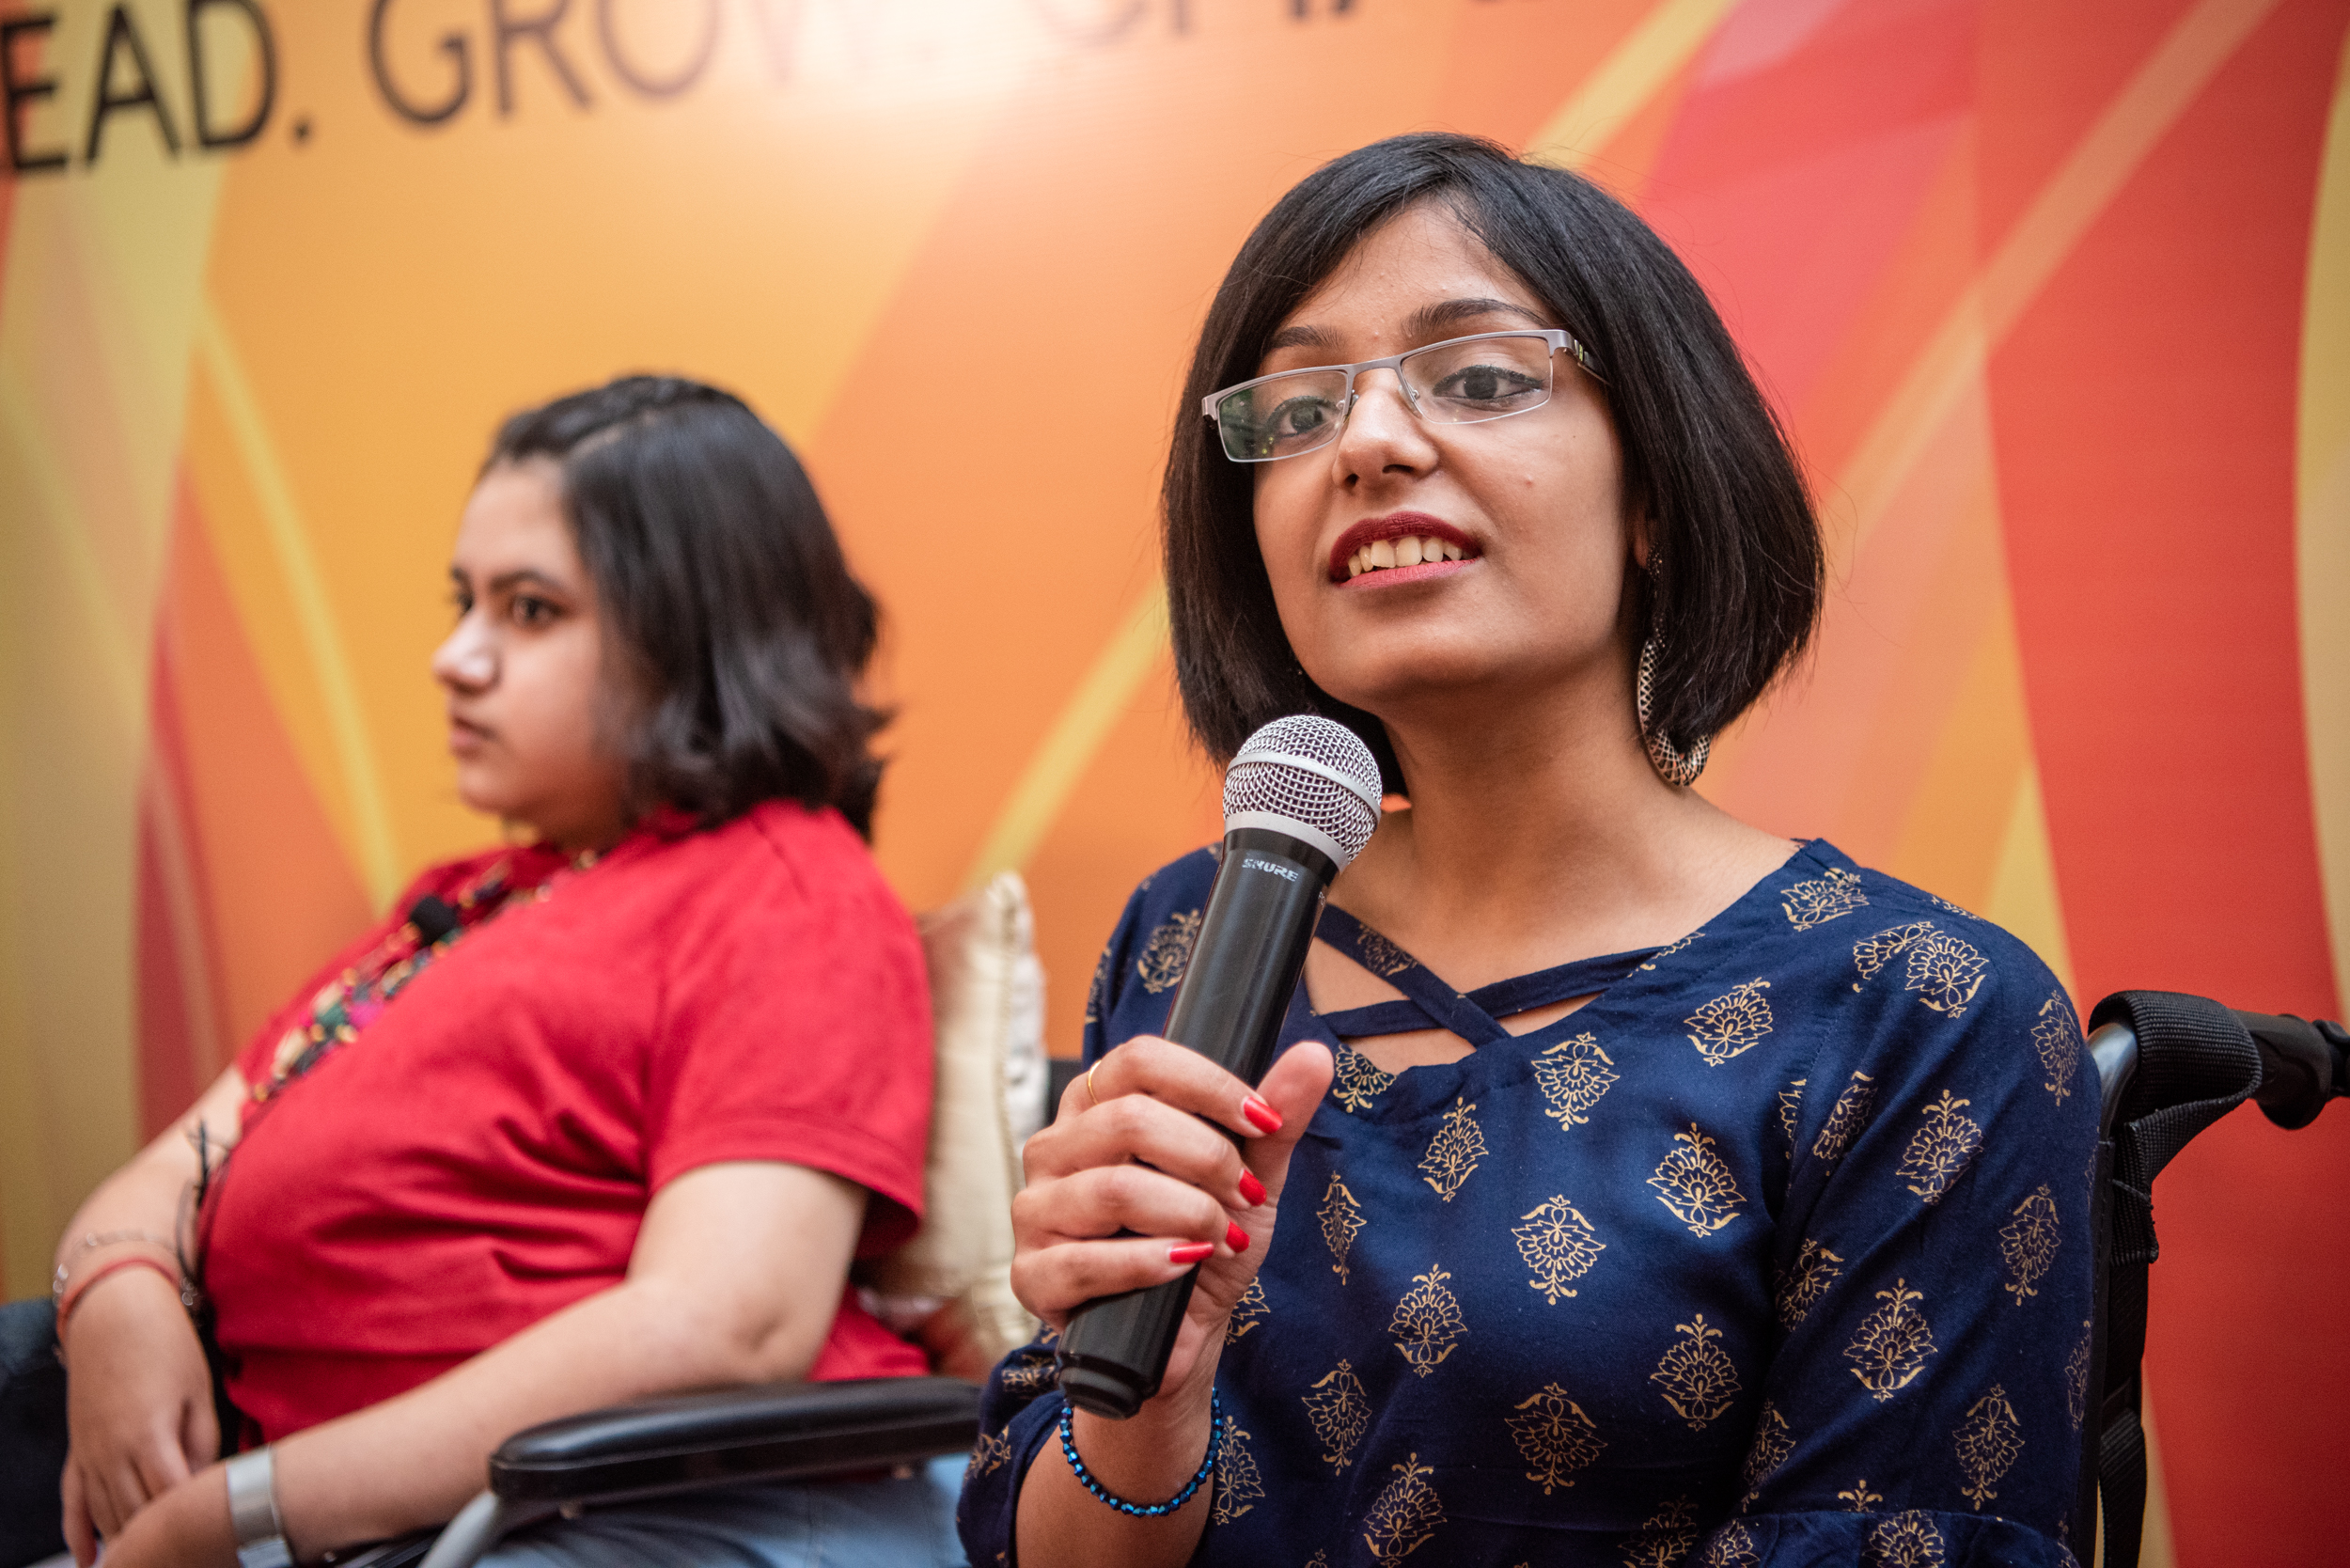 i can lead 2019 fellow pratishtha deveshwar speaking in a mic at lead grow change delhi; kavya in the background